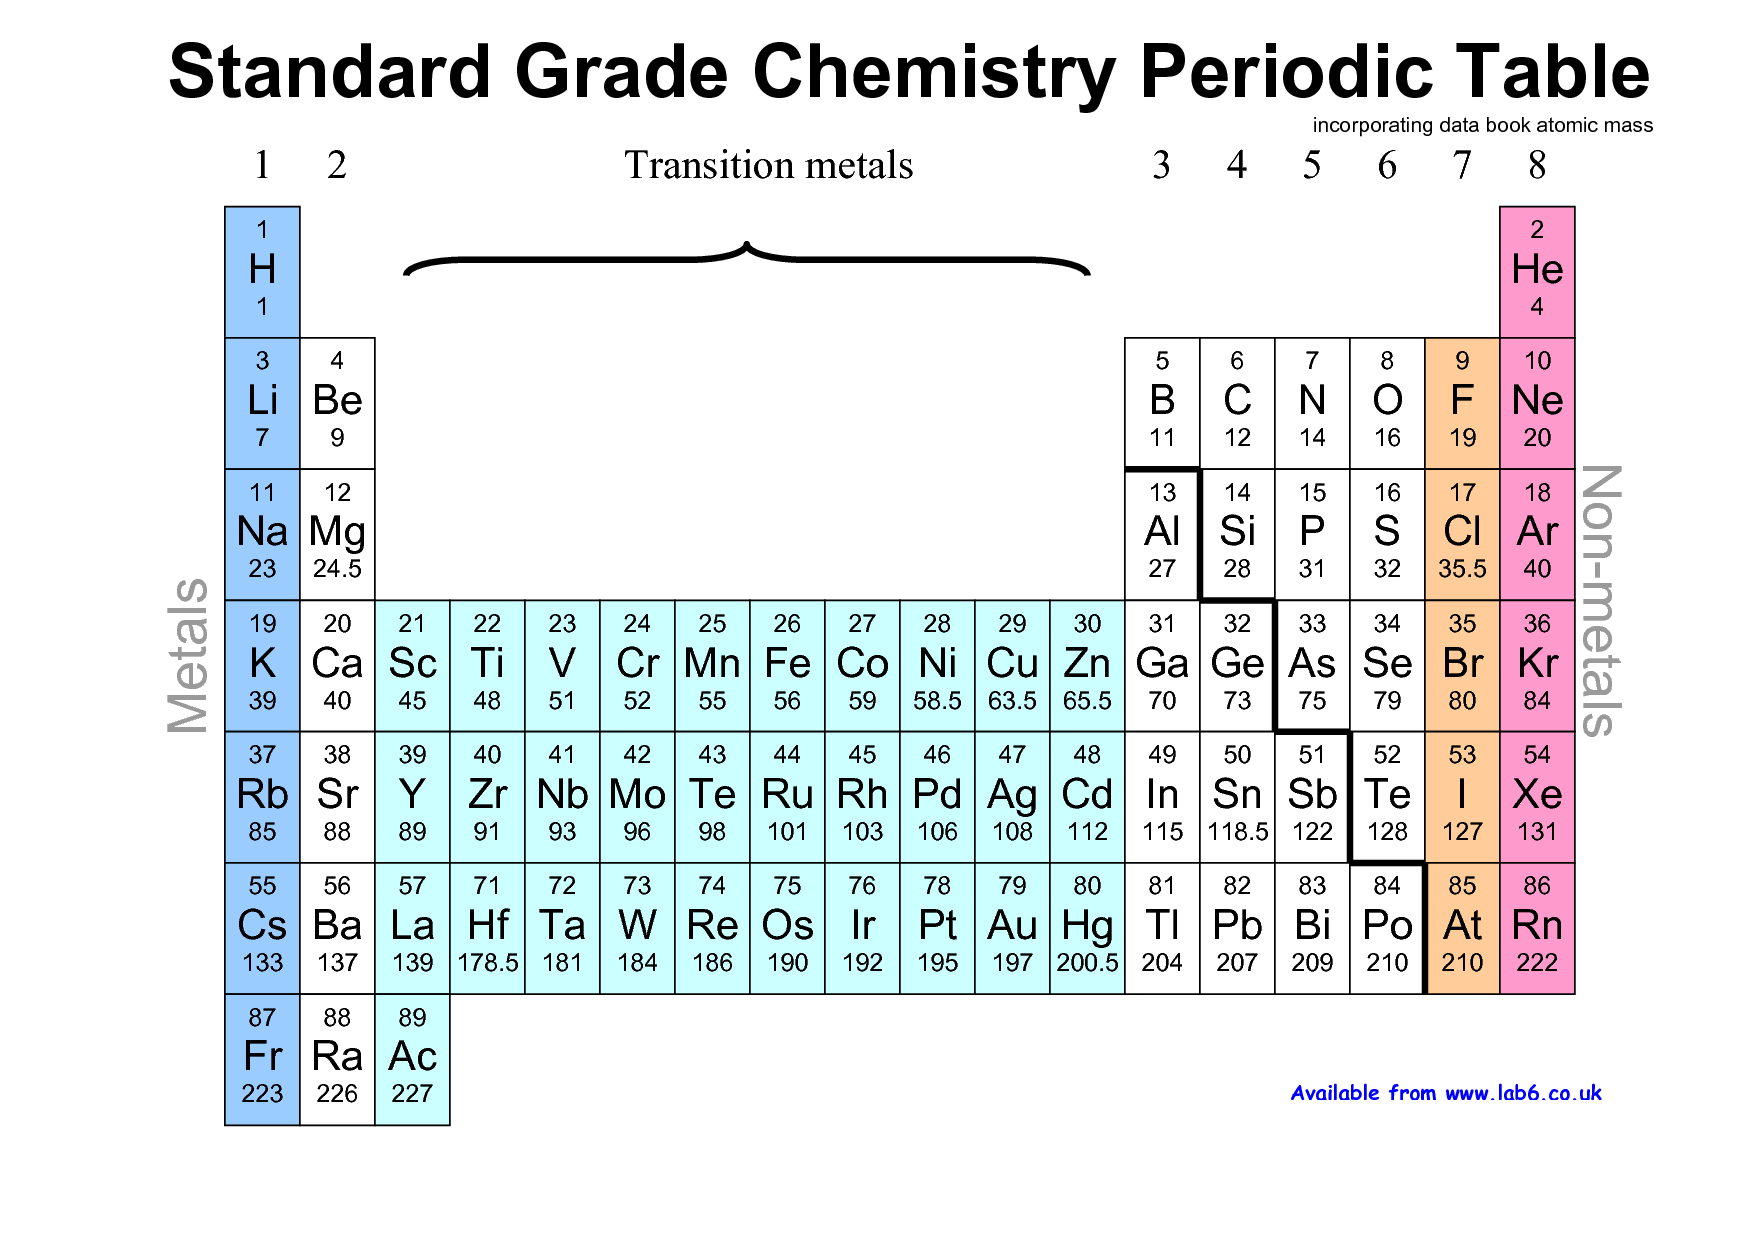 Chemistry periodic table bing images chemistry pinterest chemistry periodic table bing images urtaz Choice Image